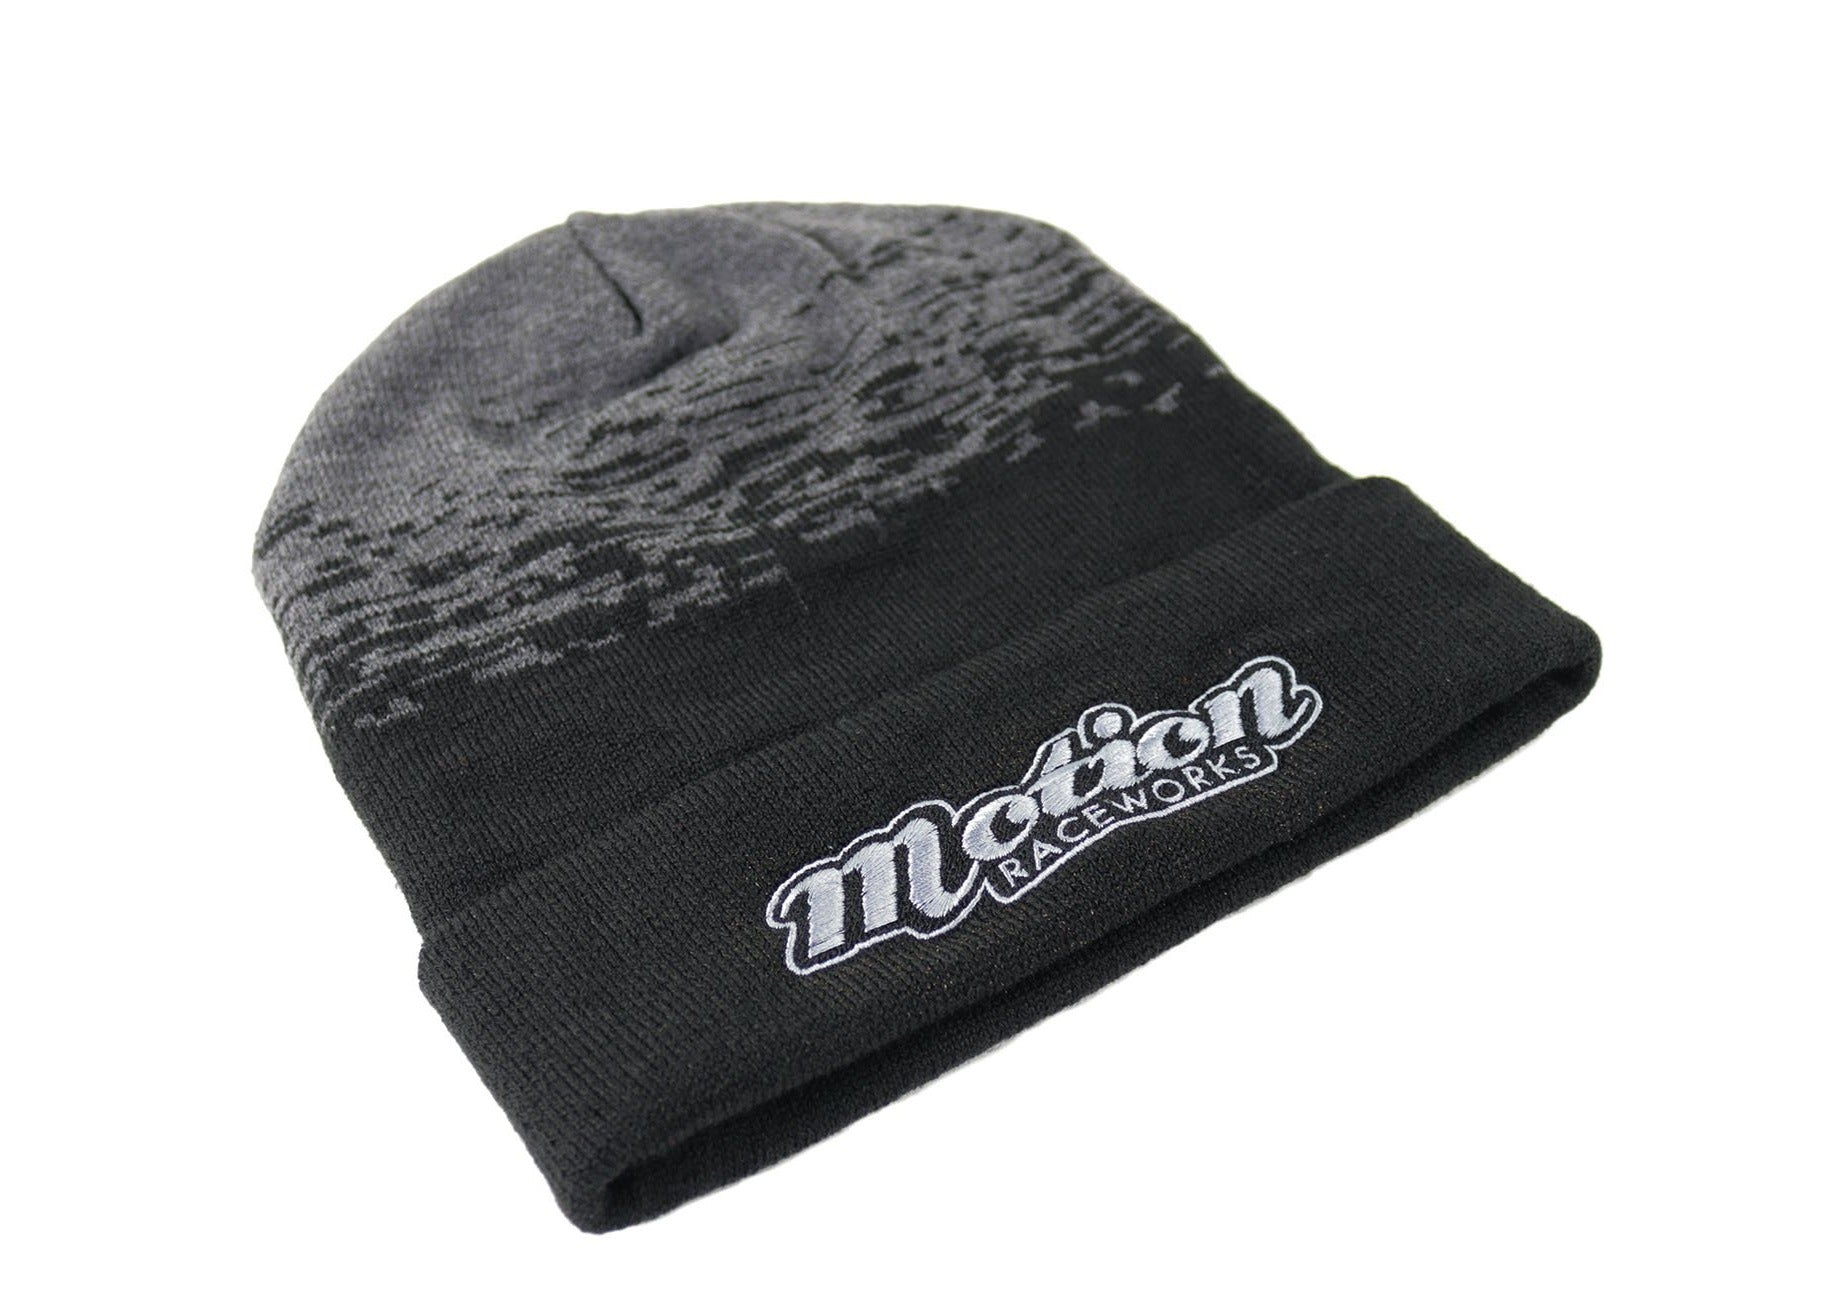 Retro Beanie Black/Dark Heather Gray-Motion Raceworks-Motion Raceworks